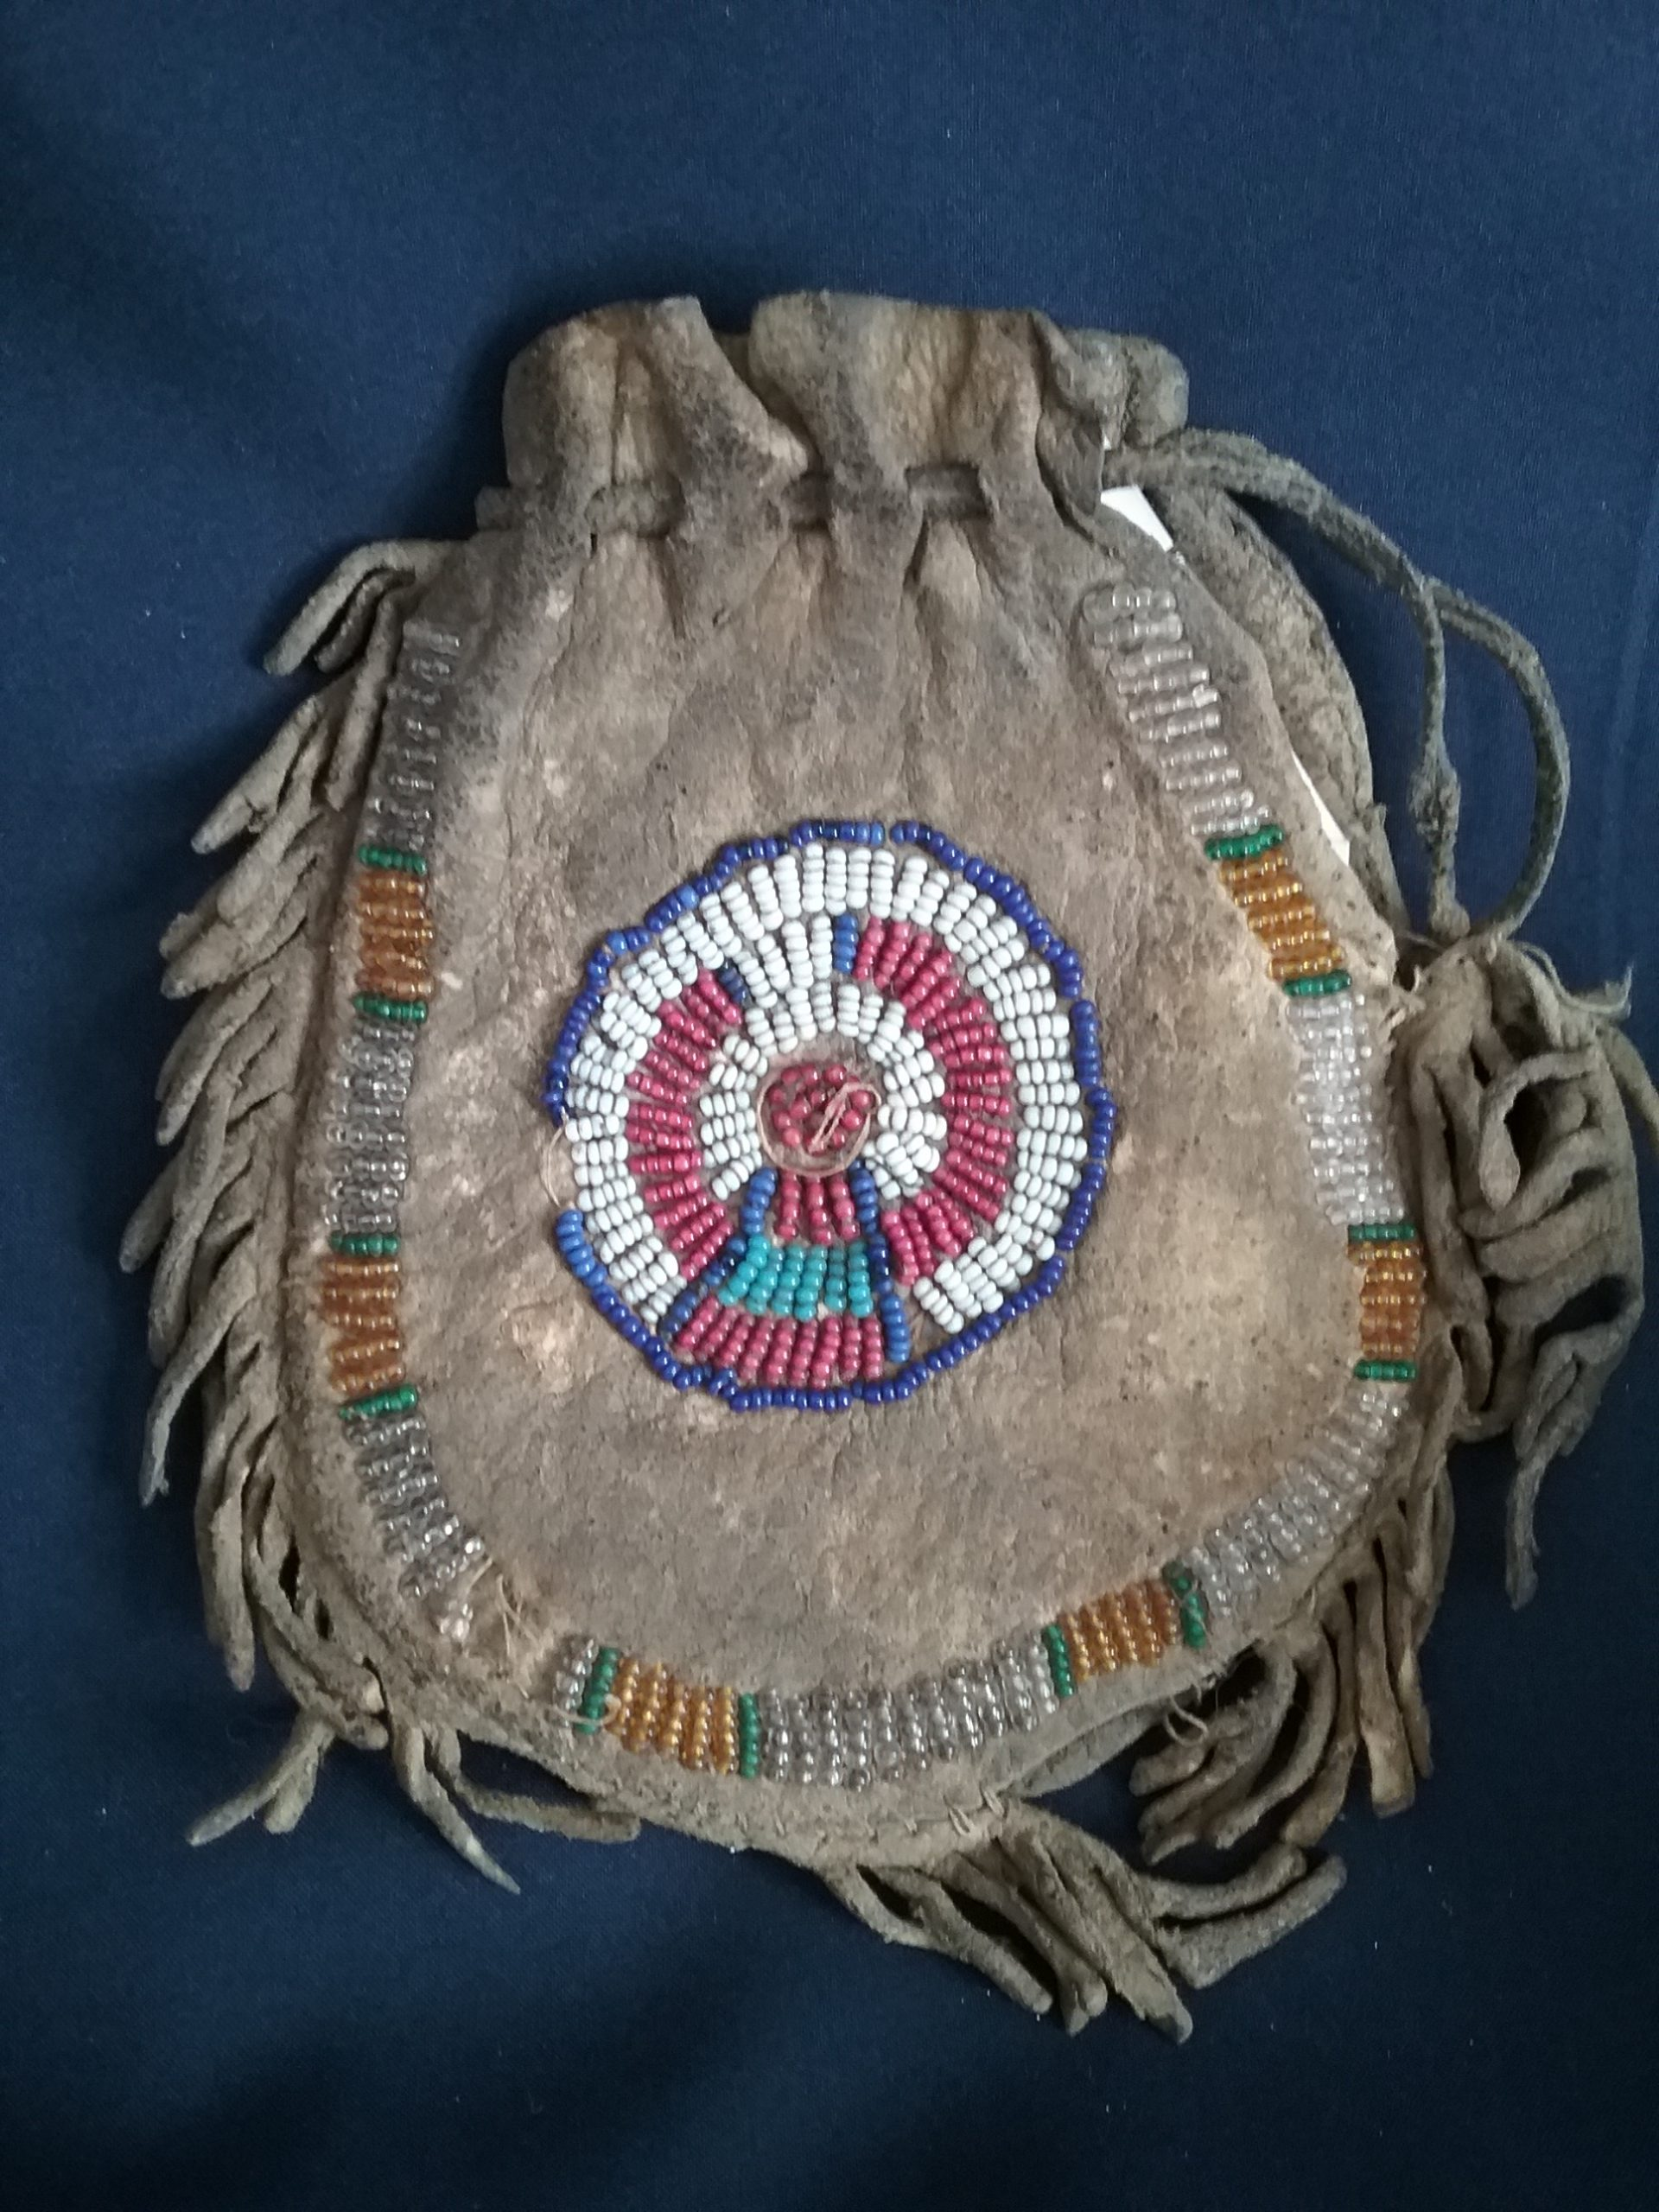 Blackfoot Bag (front): Beaded leather bag attributed to the Blackfoot Nation, c. 1890. This bag was brought to Minnesota by Earl E. Bundy, who worked with a group of Blackfoot Indians on a cattle ranch. He was 17 when he got this bag. Donated by Carol Holmquist. MCHS collections, #1990.28.1.